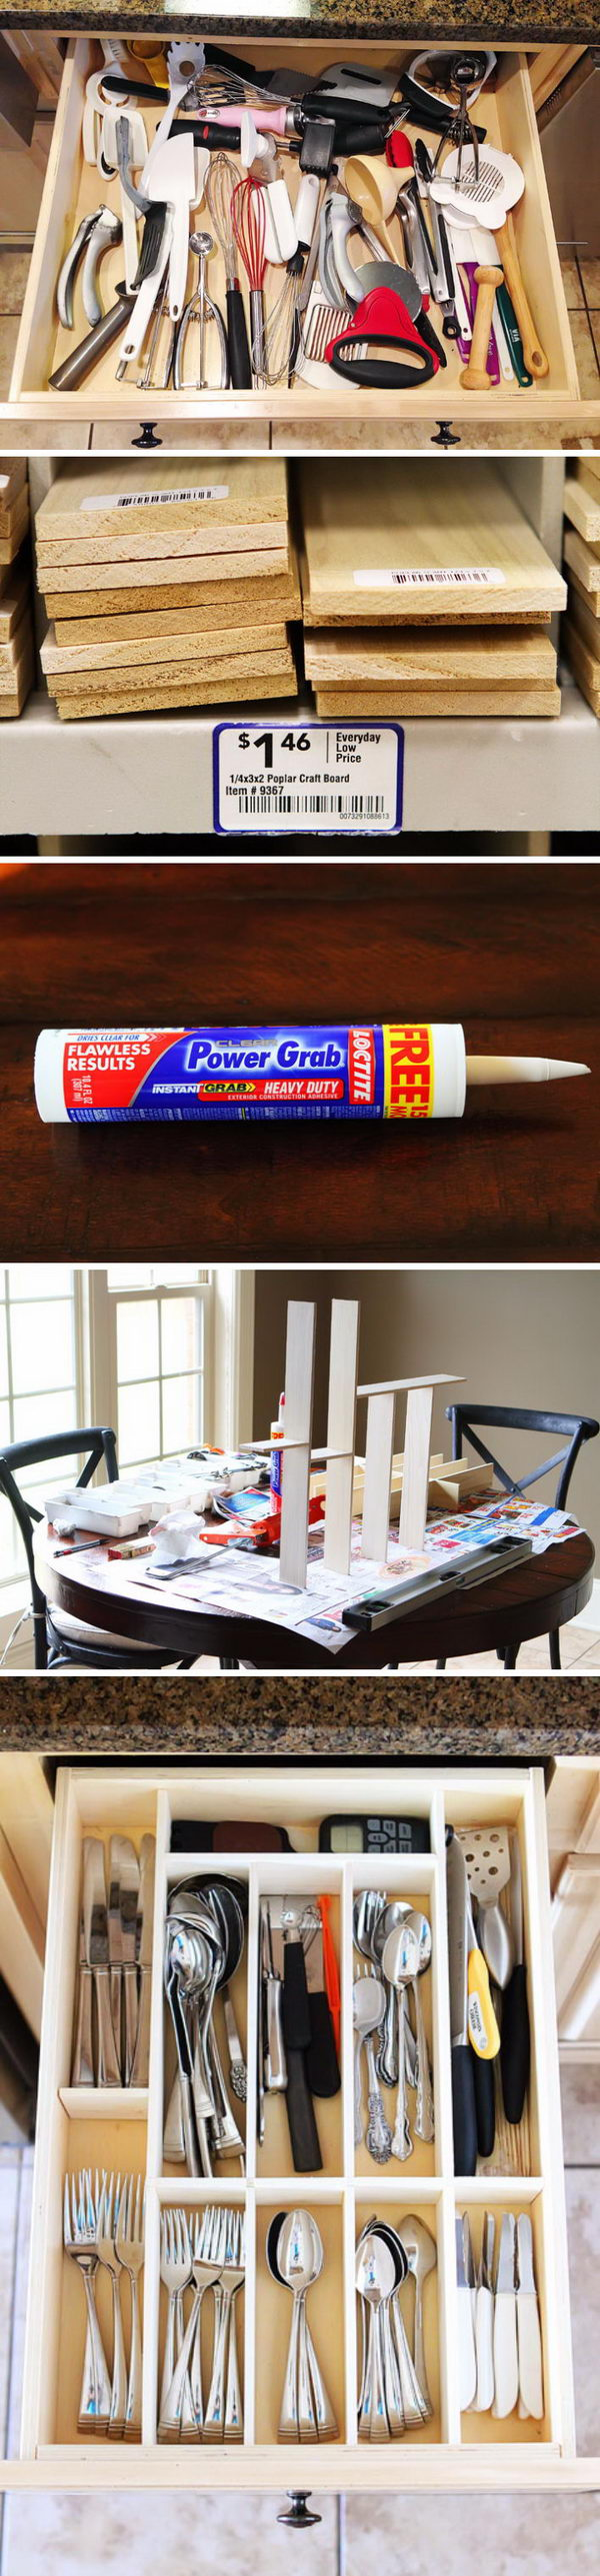 DIY Kitchen Utensil Drawer Organizer.